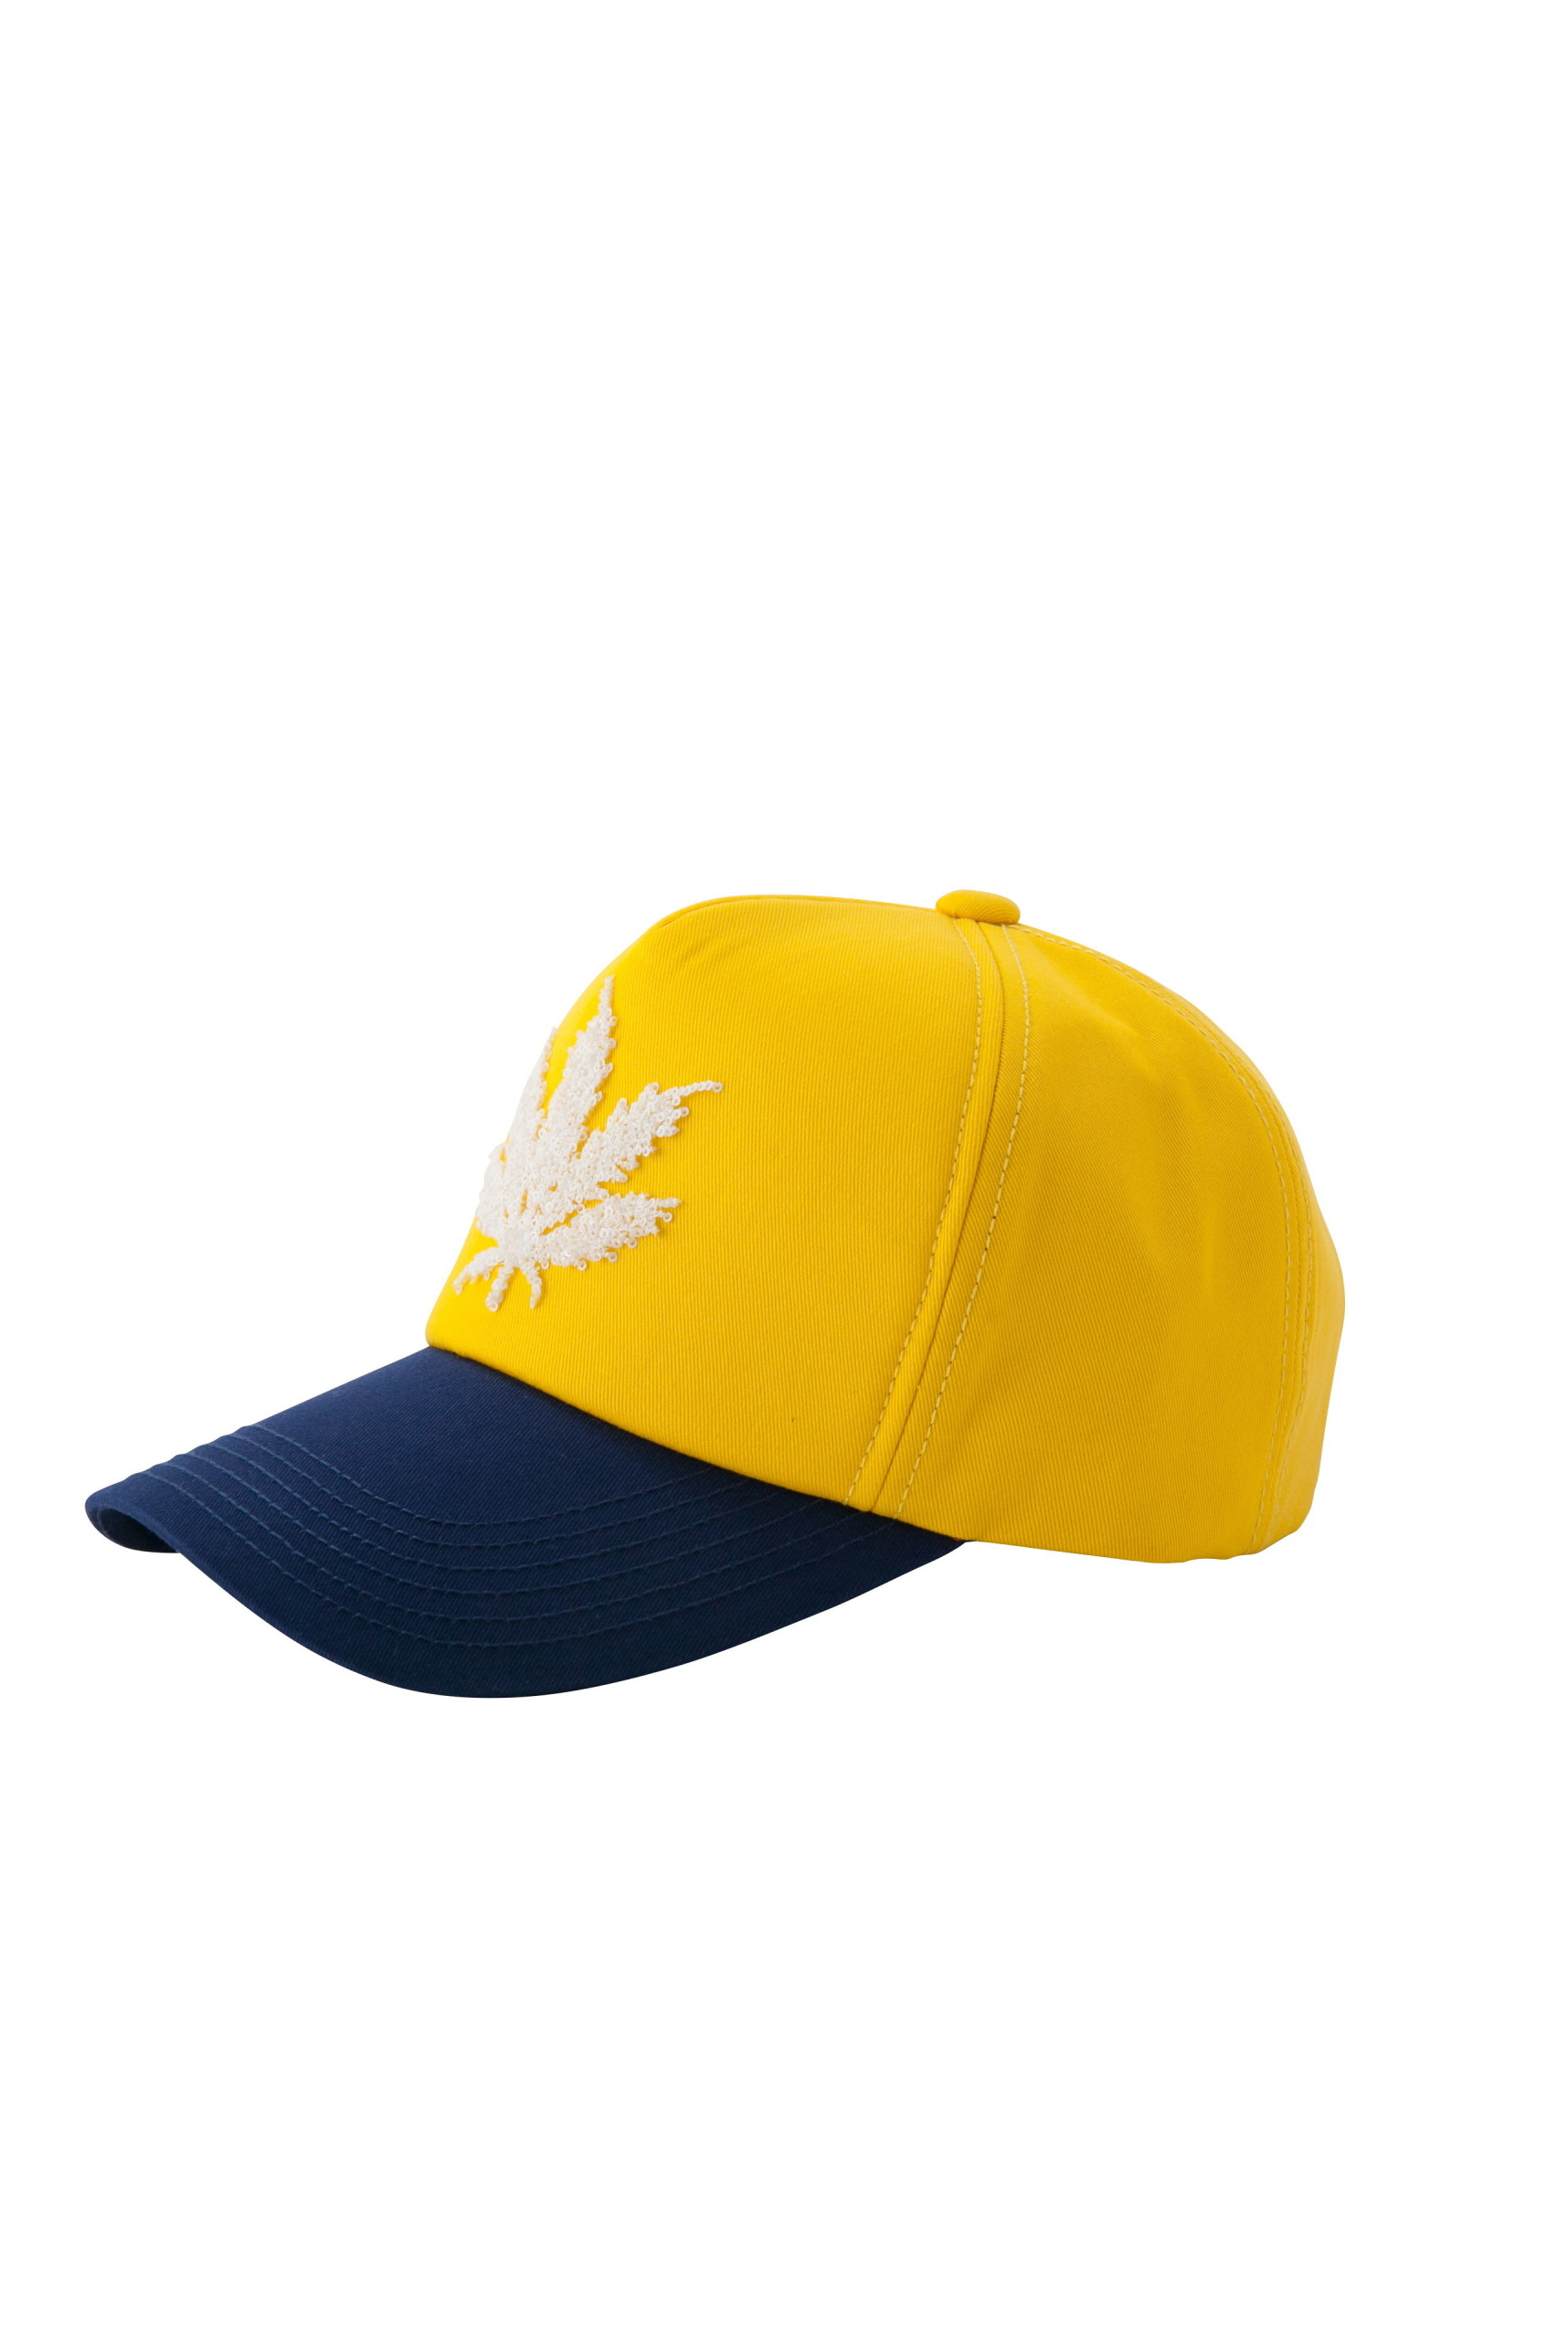 CAP WITH 3D SEQUIN LEAF EMBROIDERY(YELLOW-UNI)